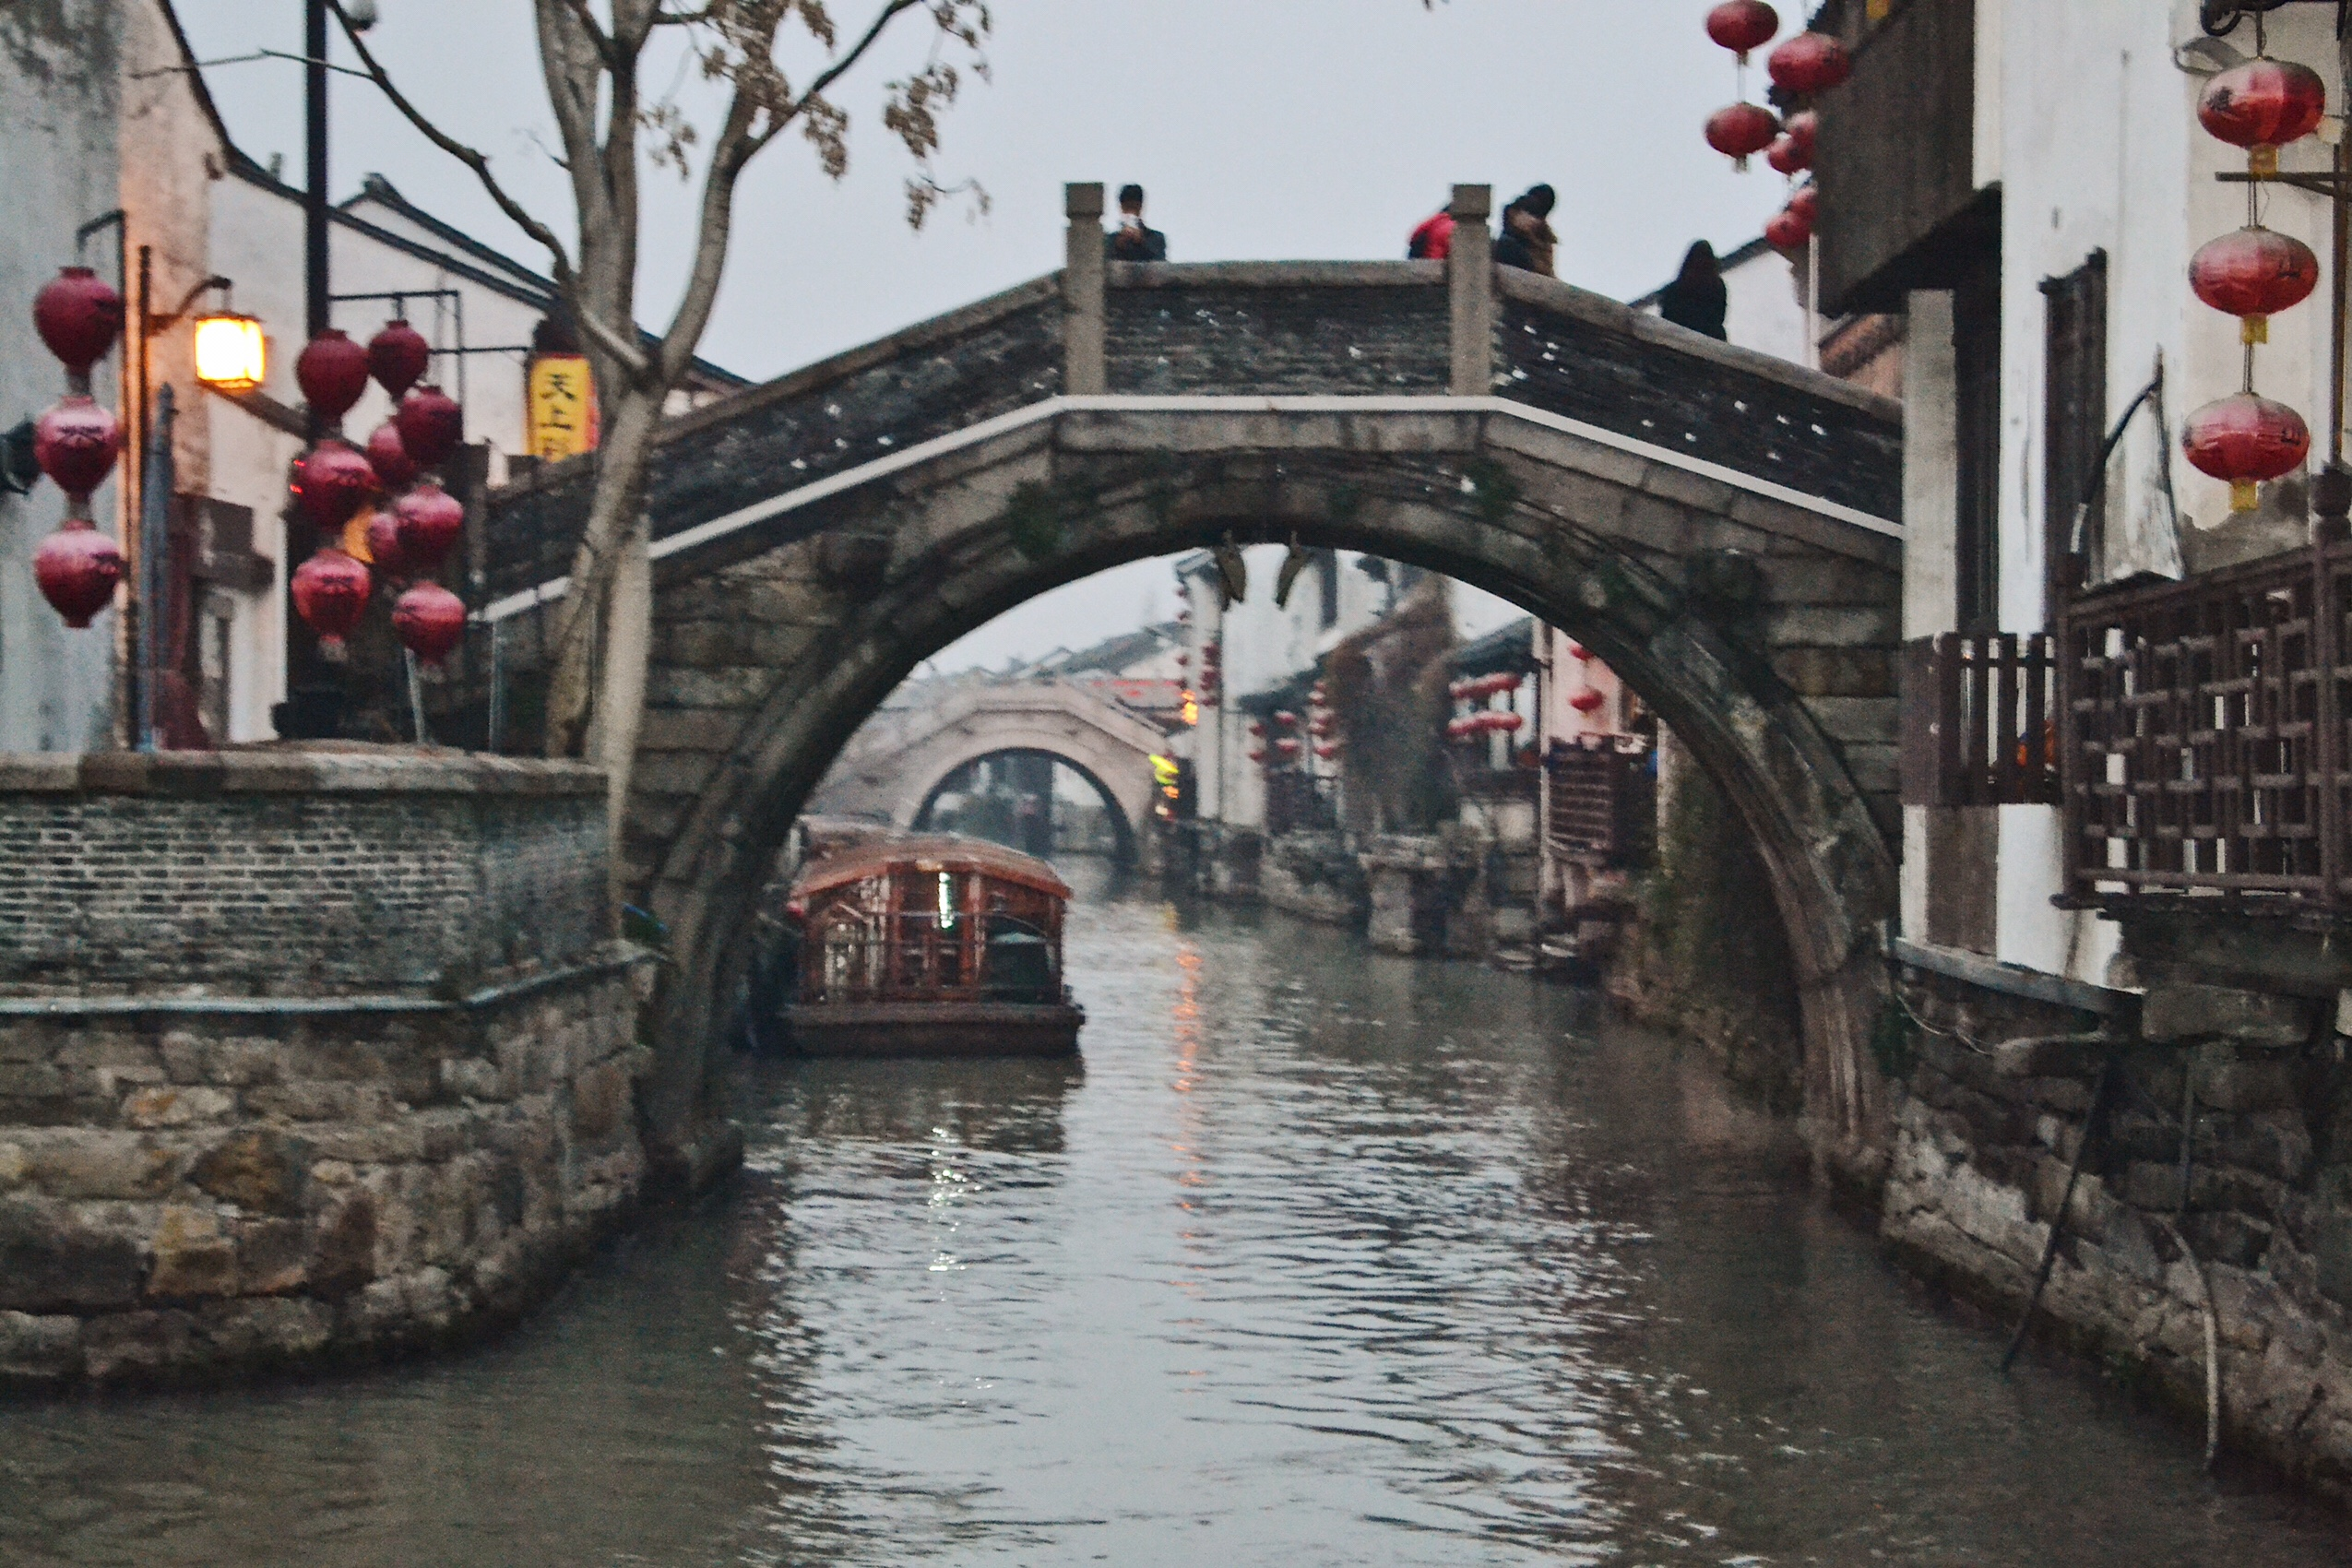 Image of canals in Suzhou in China